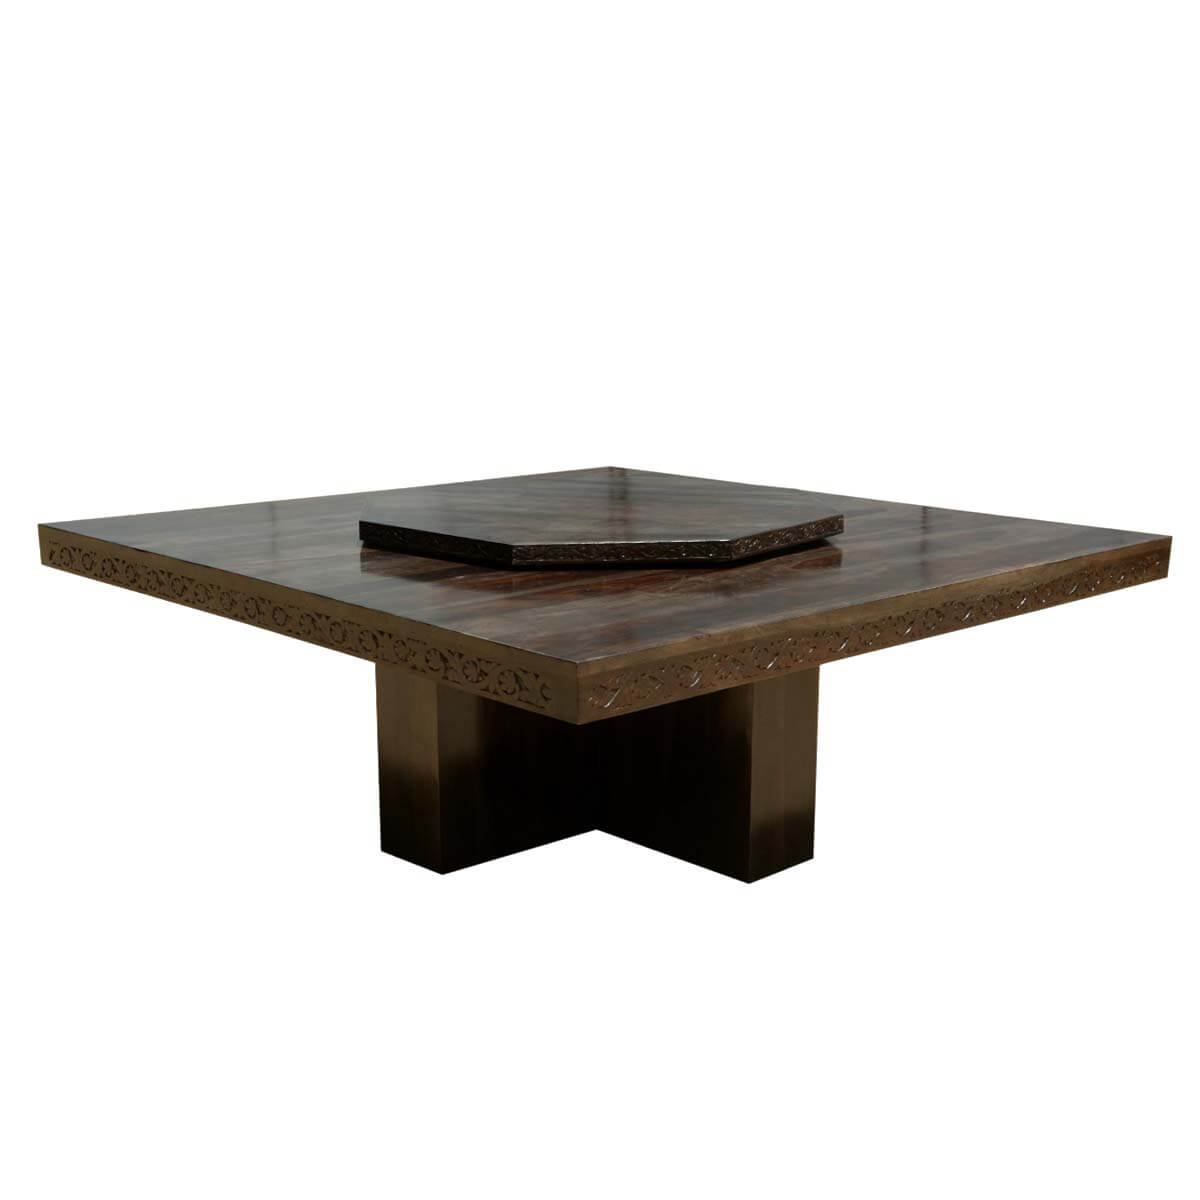 Square contemporary solid wood pedestal dining table w for Pedestal dining table